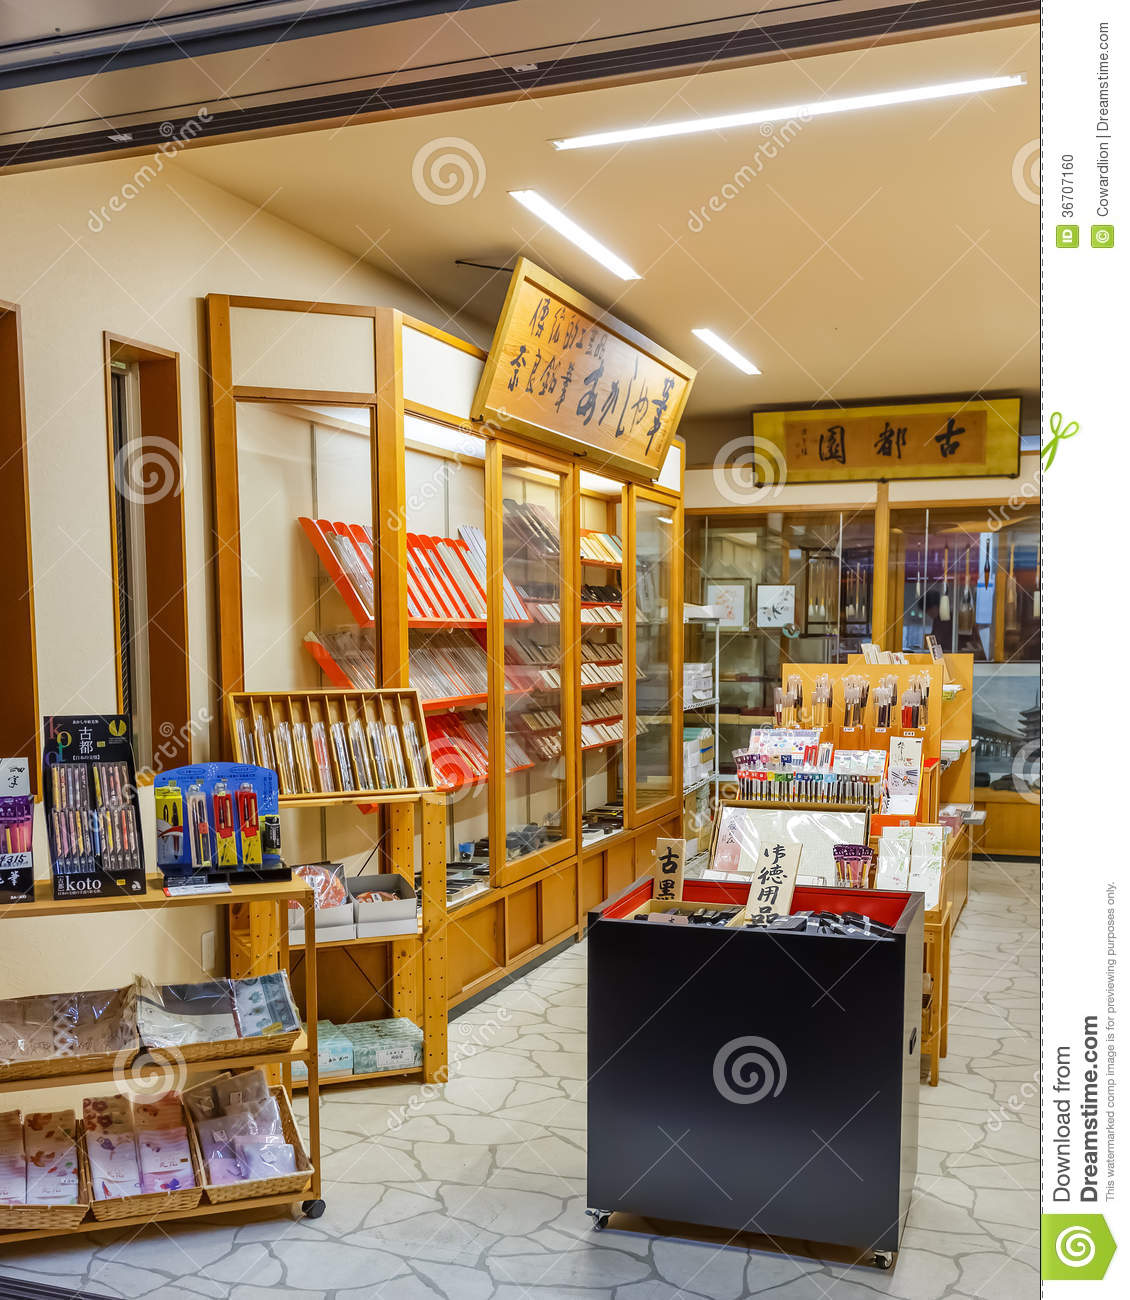 Stationery Shop In Nara Editorial Image - Image: 36707160